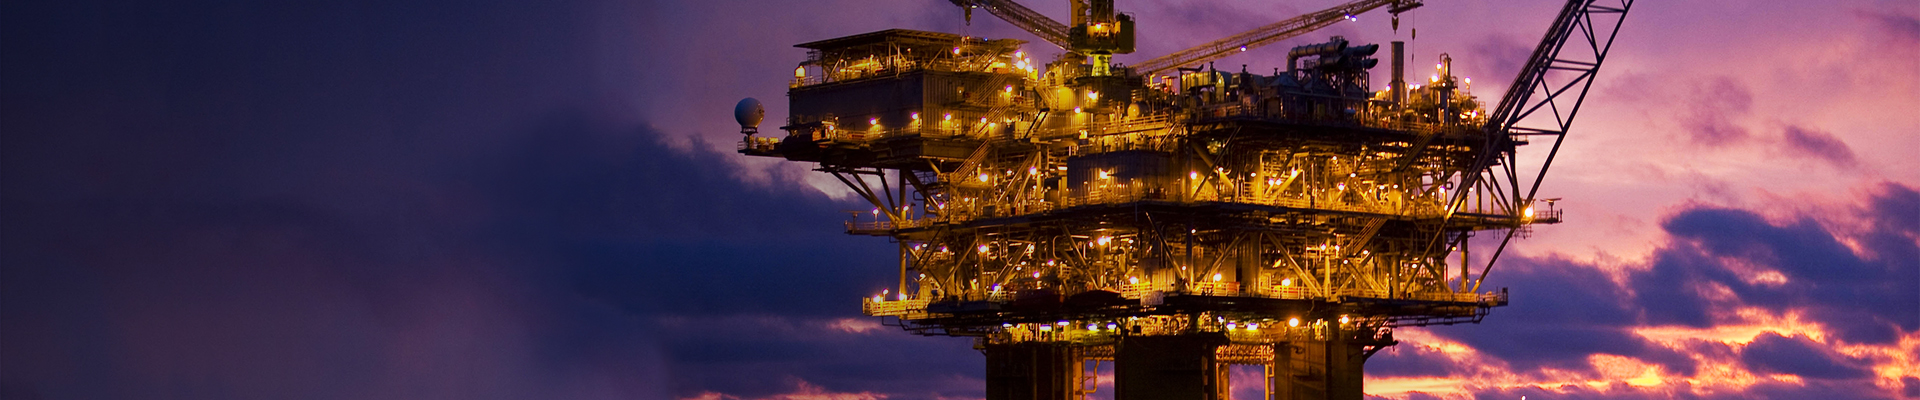 Oil and gas banner 1920 x 400.jpg